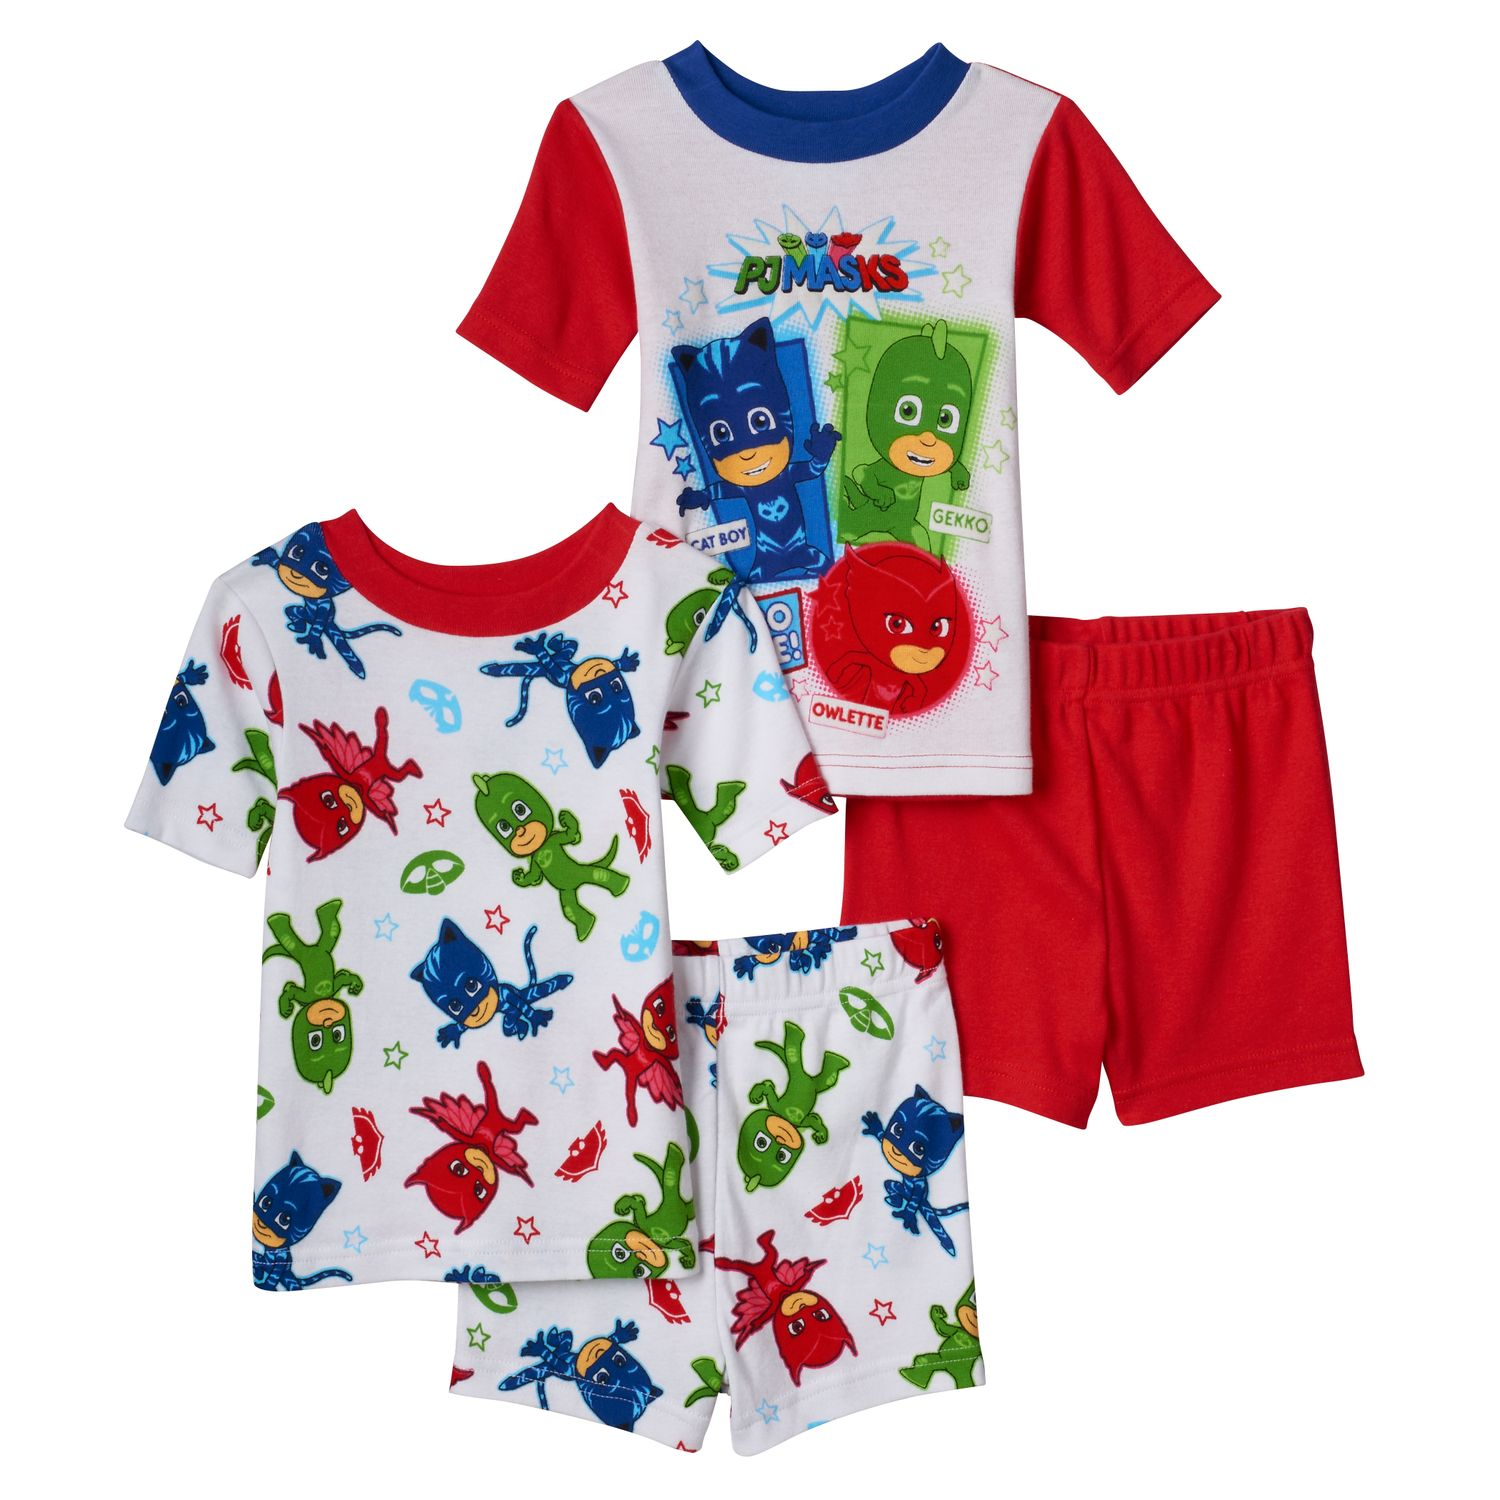 Toddler Boy PJ Masks 4 Pc. Glow In The Dark Owlette